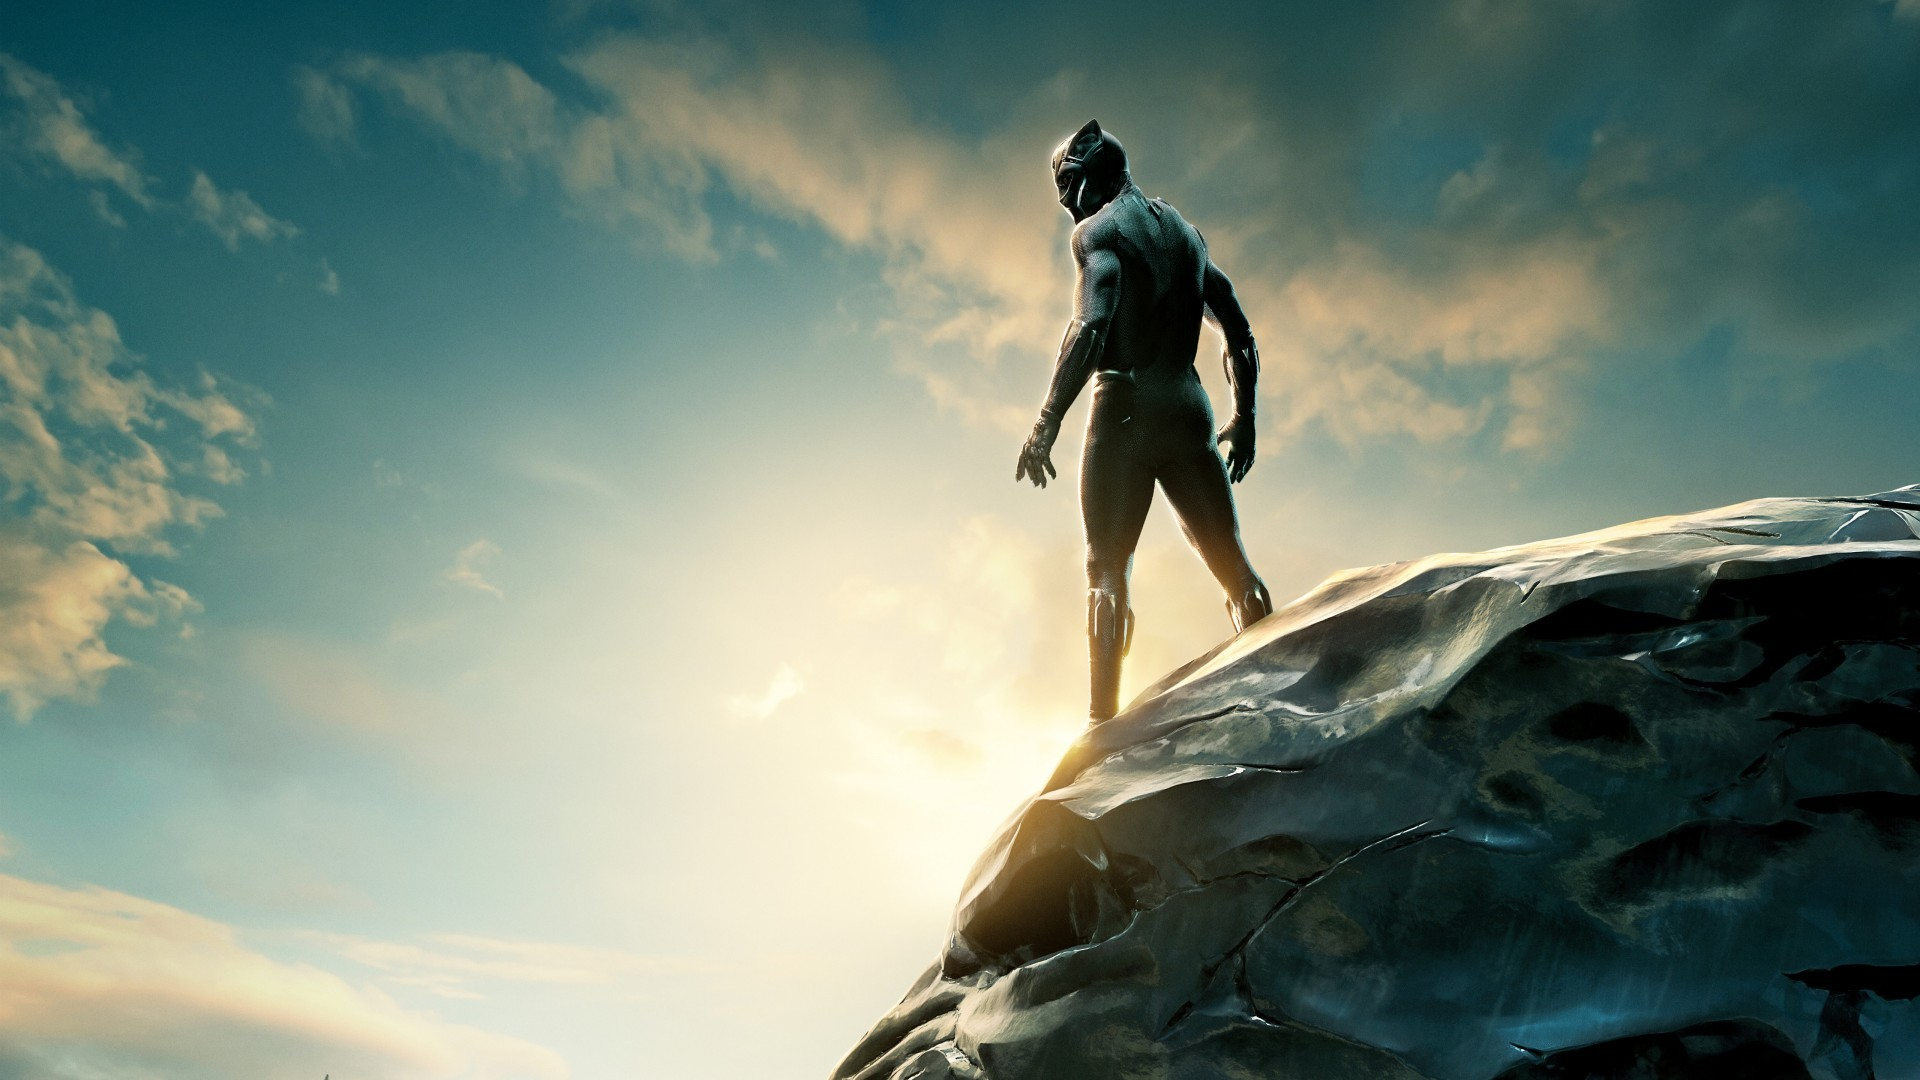 Black Panther 2018 Movie Still Full Hd Wallpaper: Black Panther Marvel HD Wallpaper (73+ Images